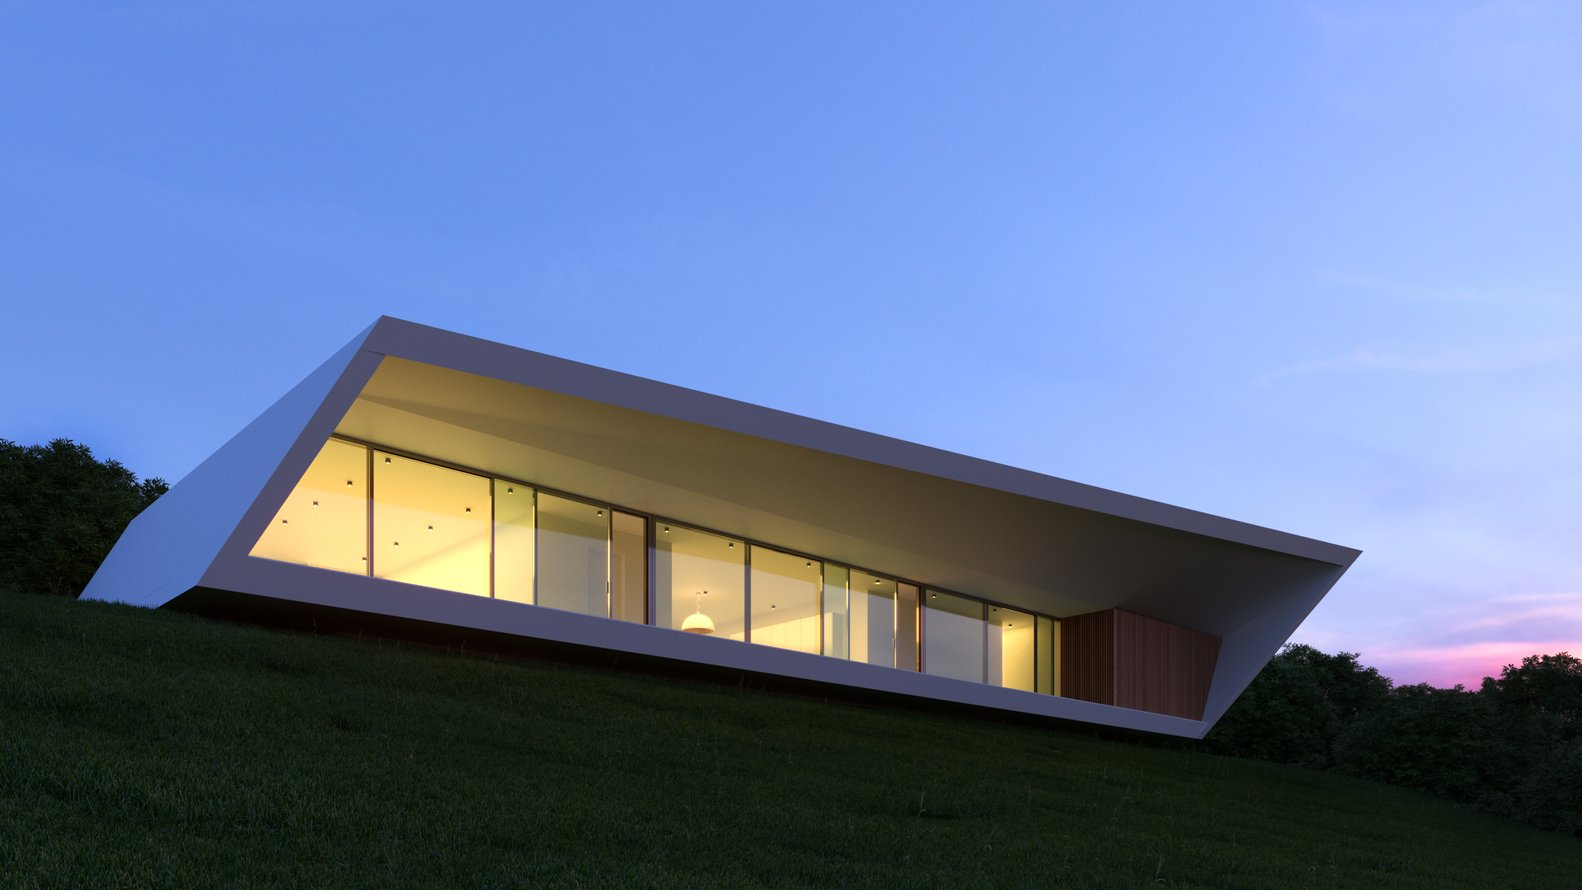 iGNANT_Nravil_Architects_White_Line_9